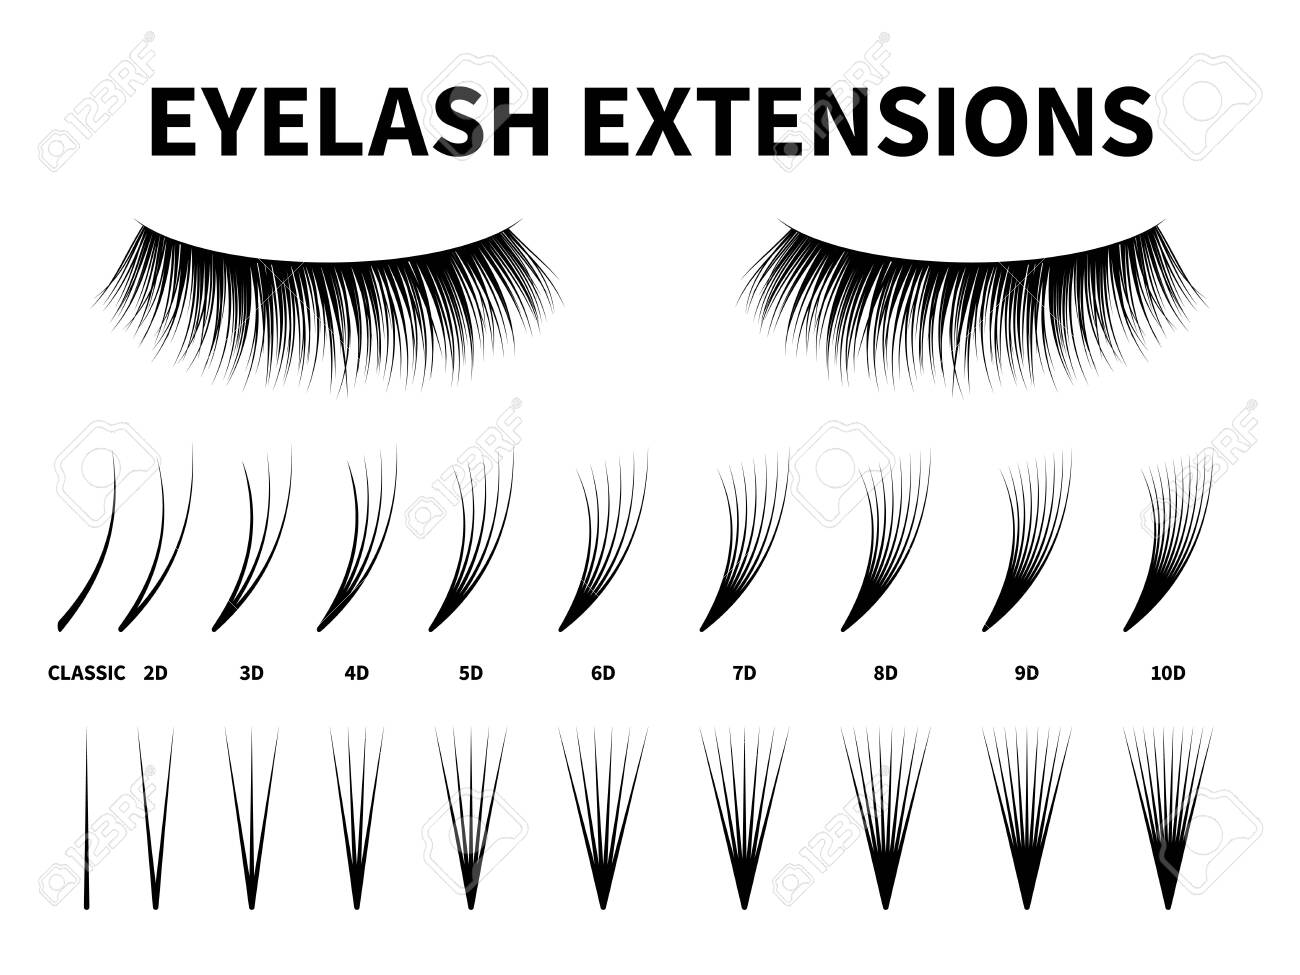 Eyelash extensions  Curling extension volume eyelashes, tweezers